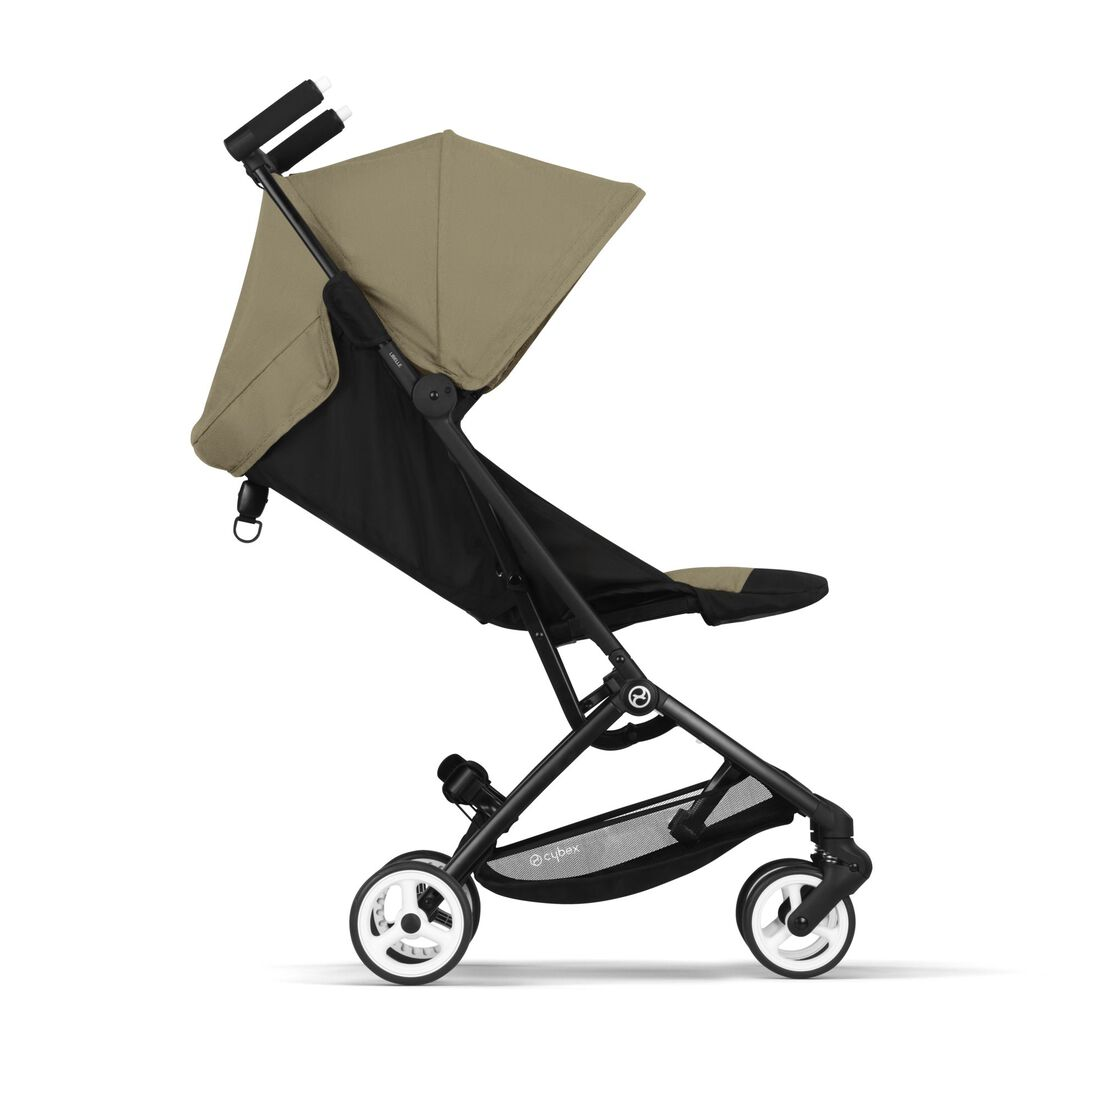 CYBEX Libelle - Classic Beige in Classic Beige large image number 4